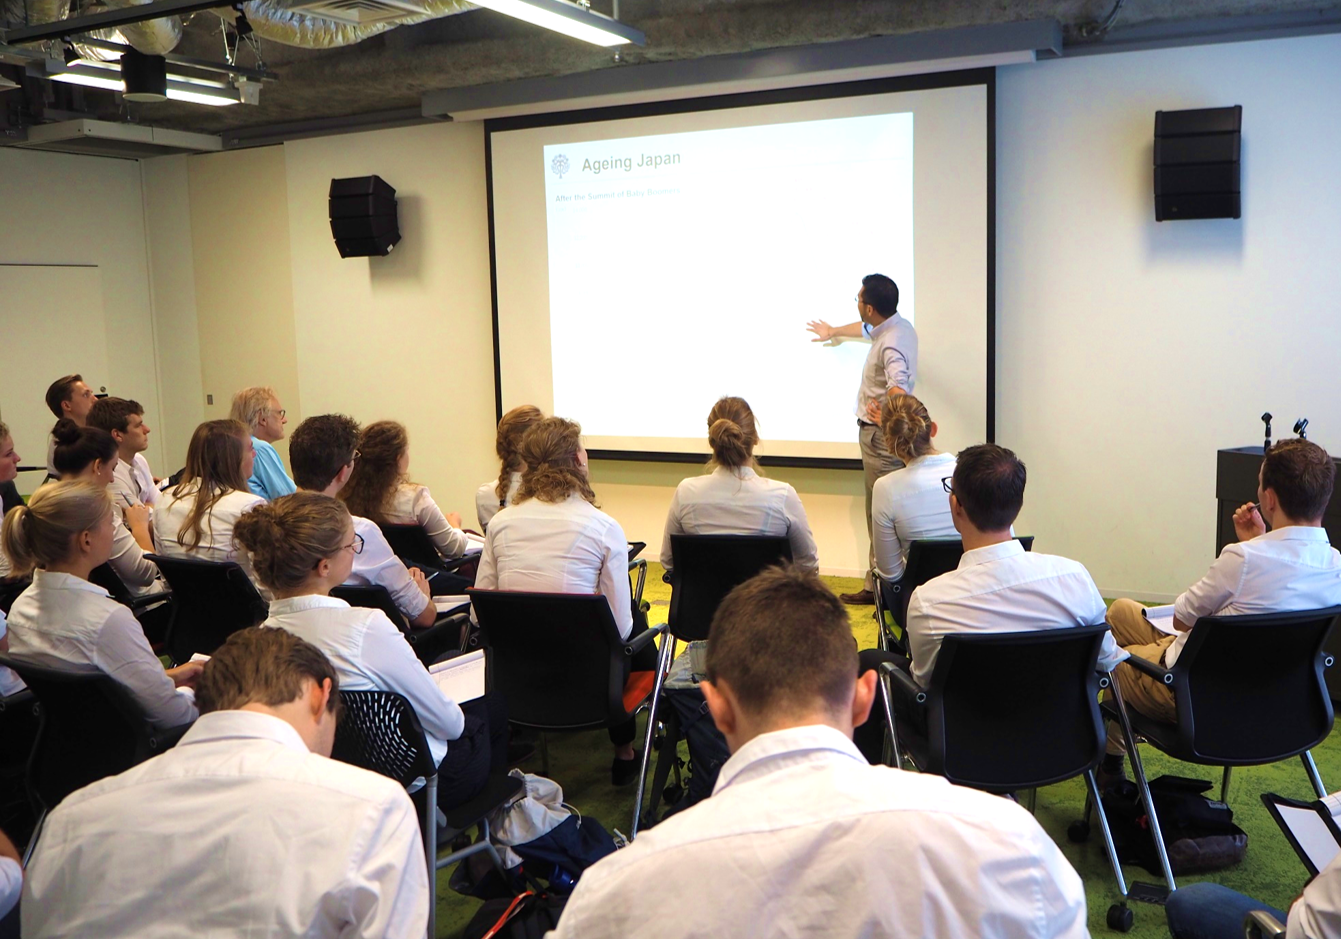 [Event Report] HGPI held a discussion with students from the University of Twente on health policies and ageing in Japan(September 12, 2018)